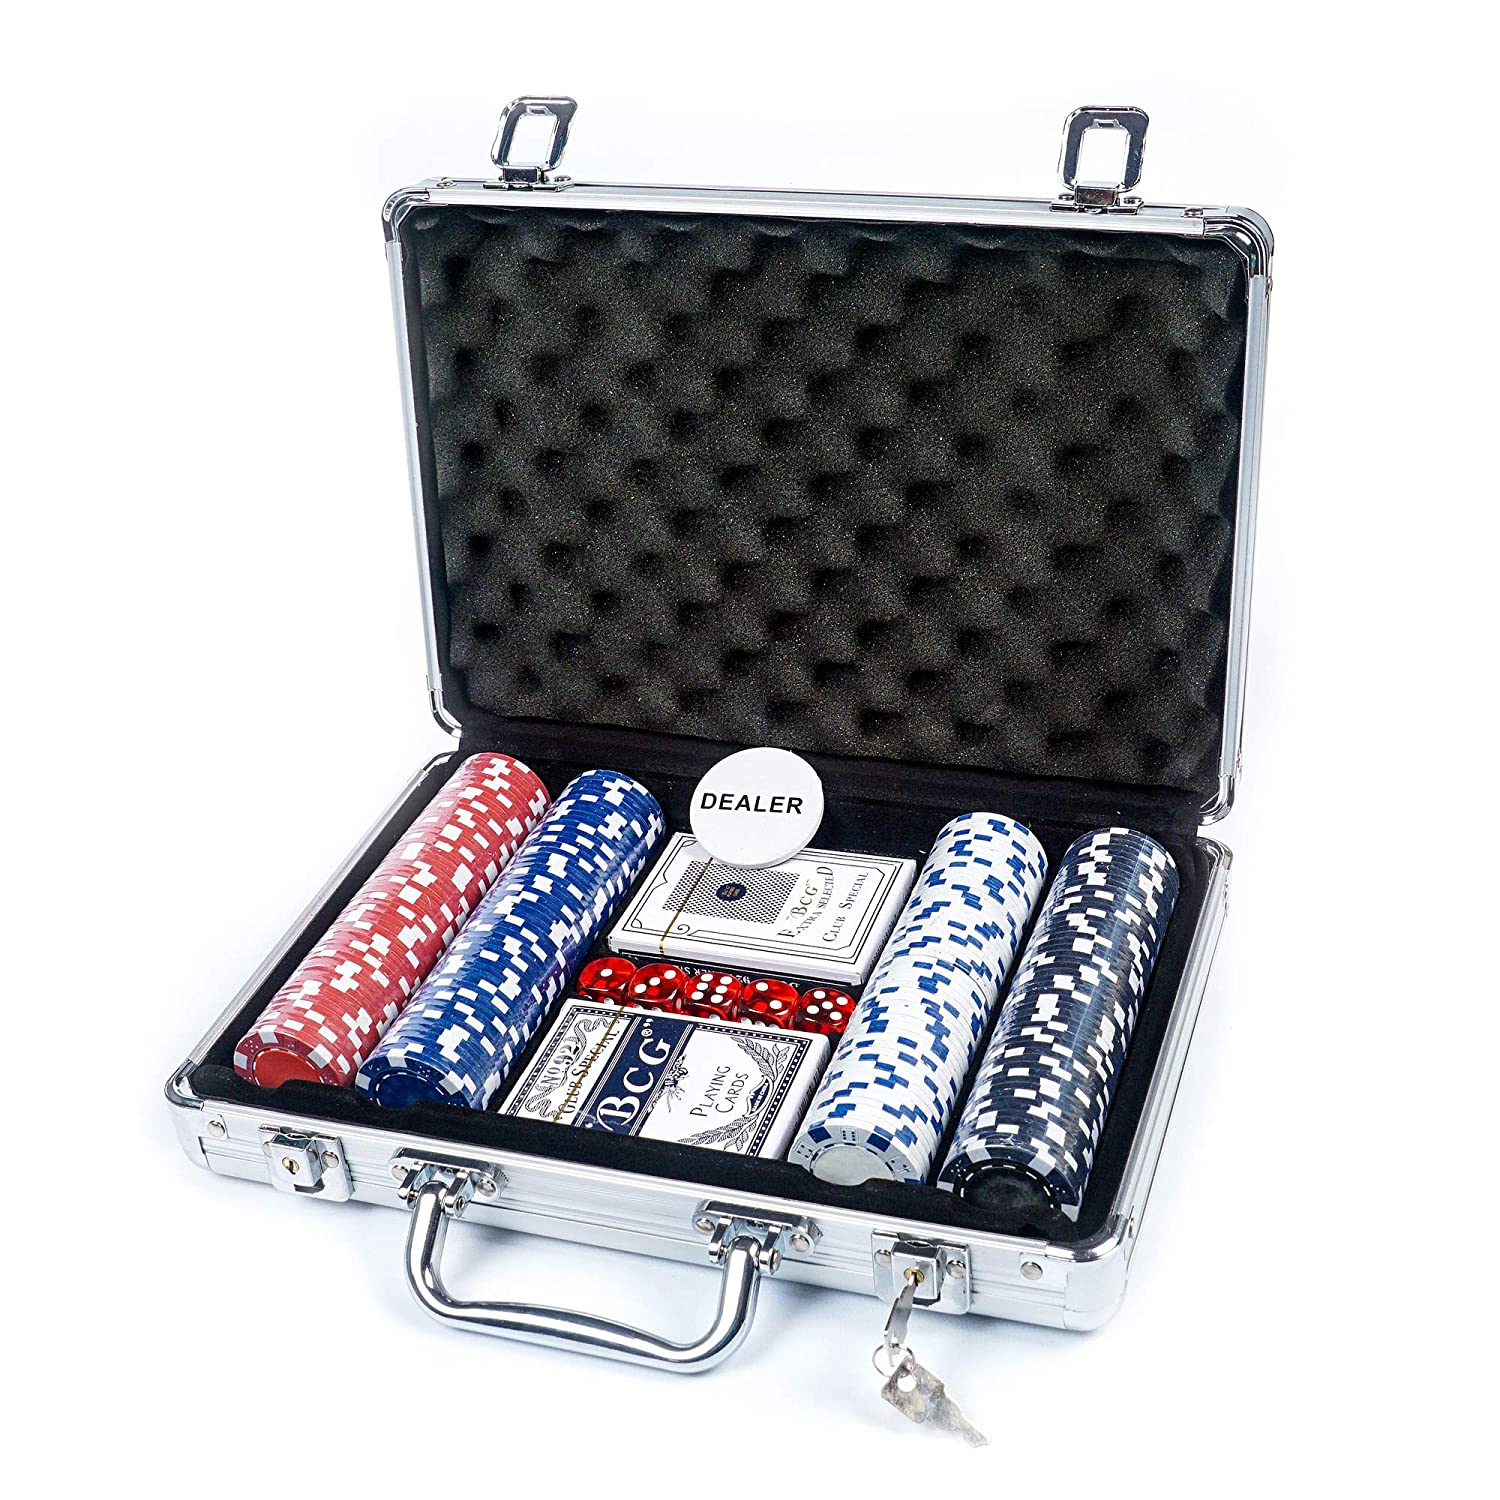 Poker Set : 200 Chips W Rack, Gaming Mat, 1 Big Blind, 1 Small Blind, 1 Dealer Button …